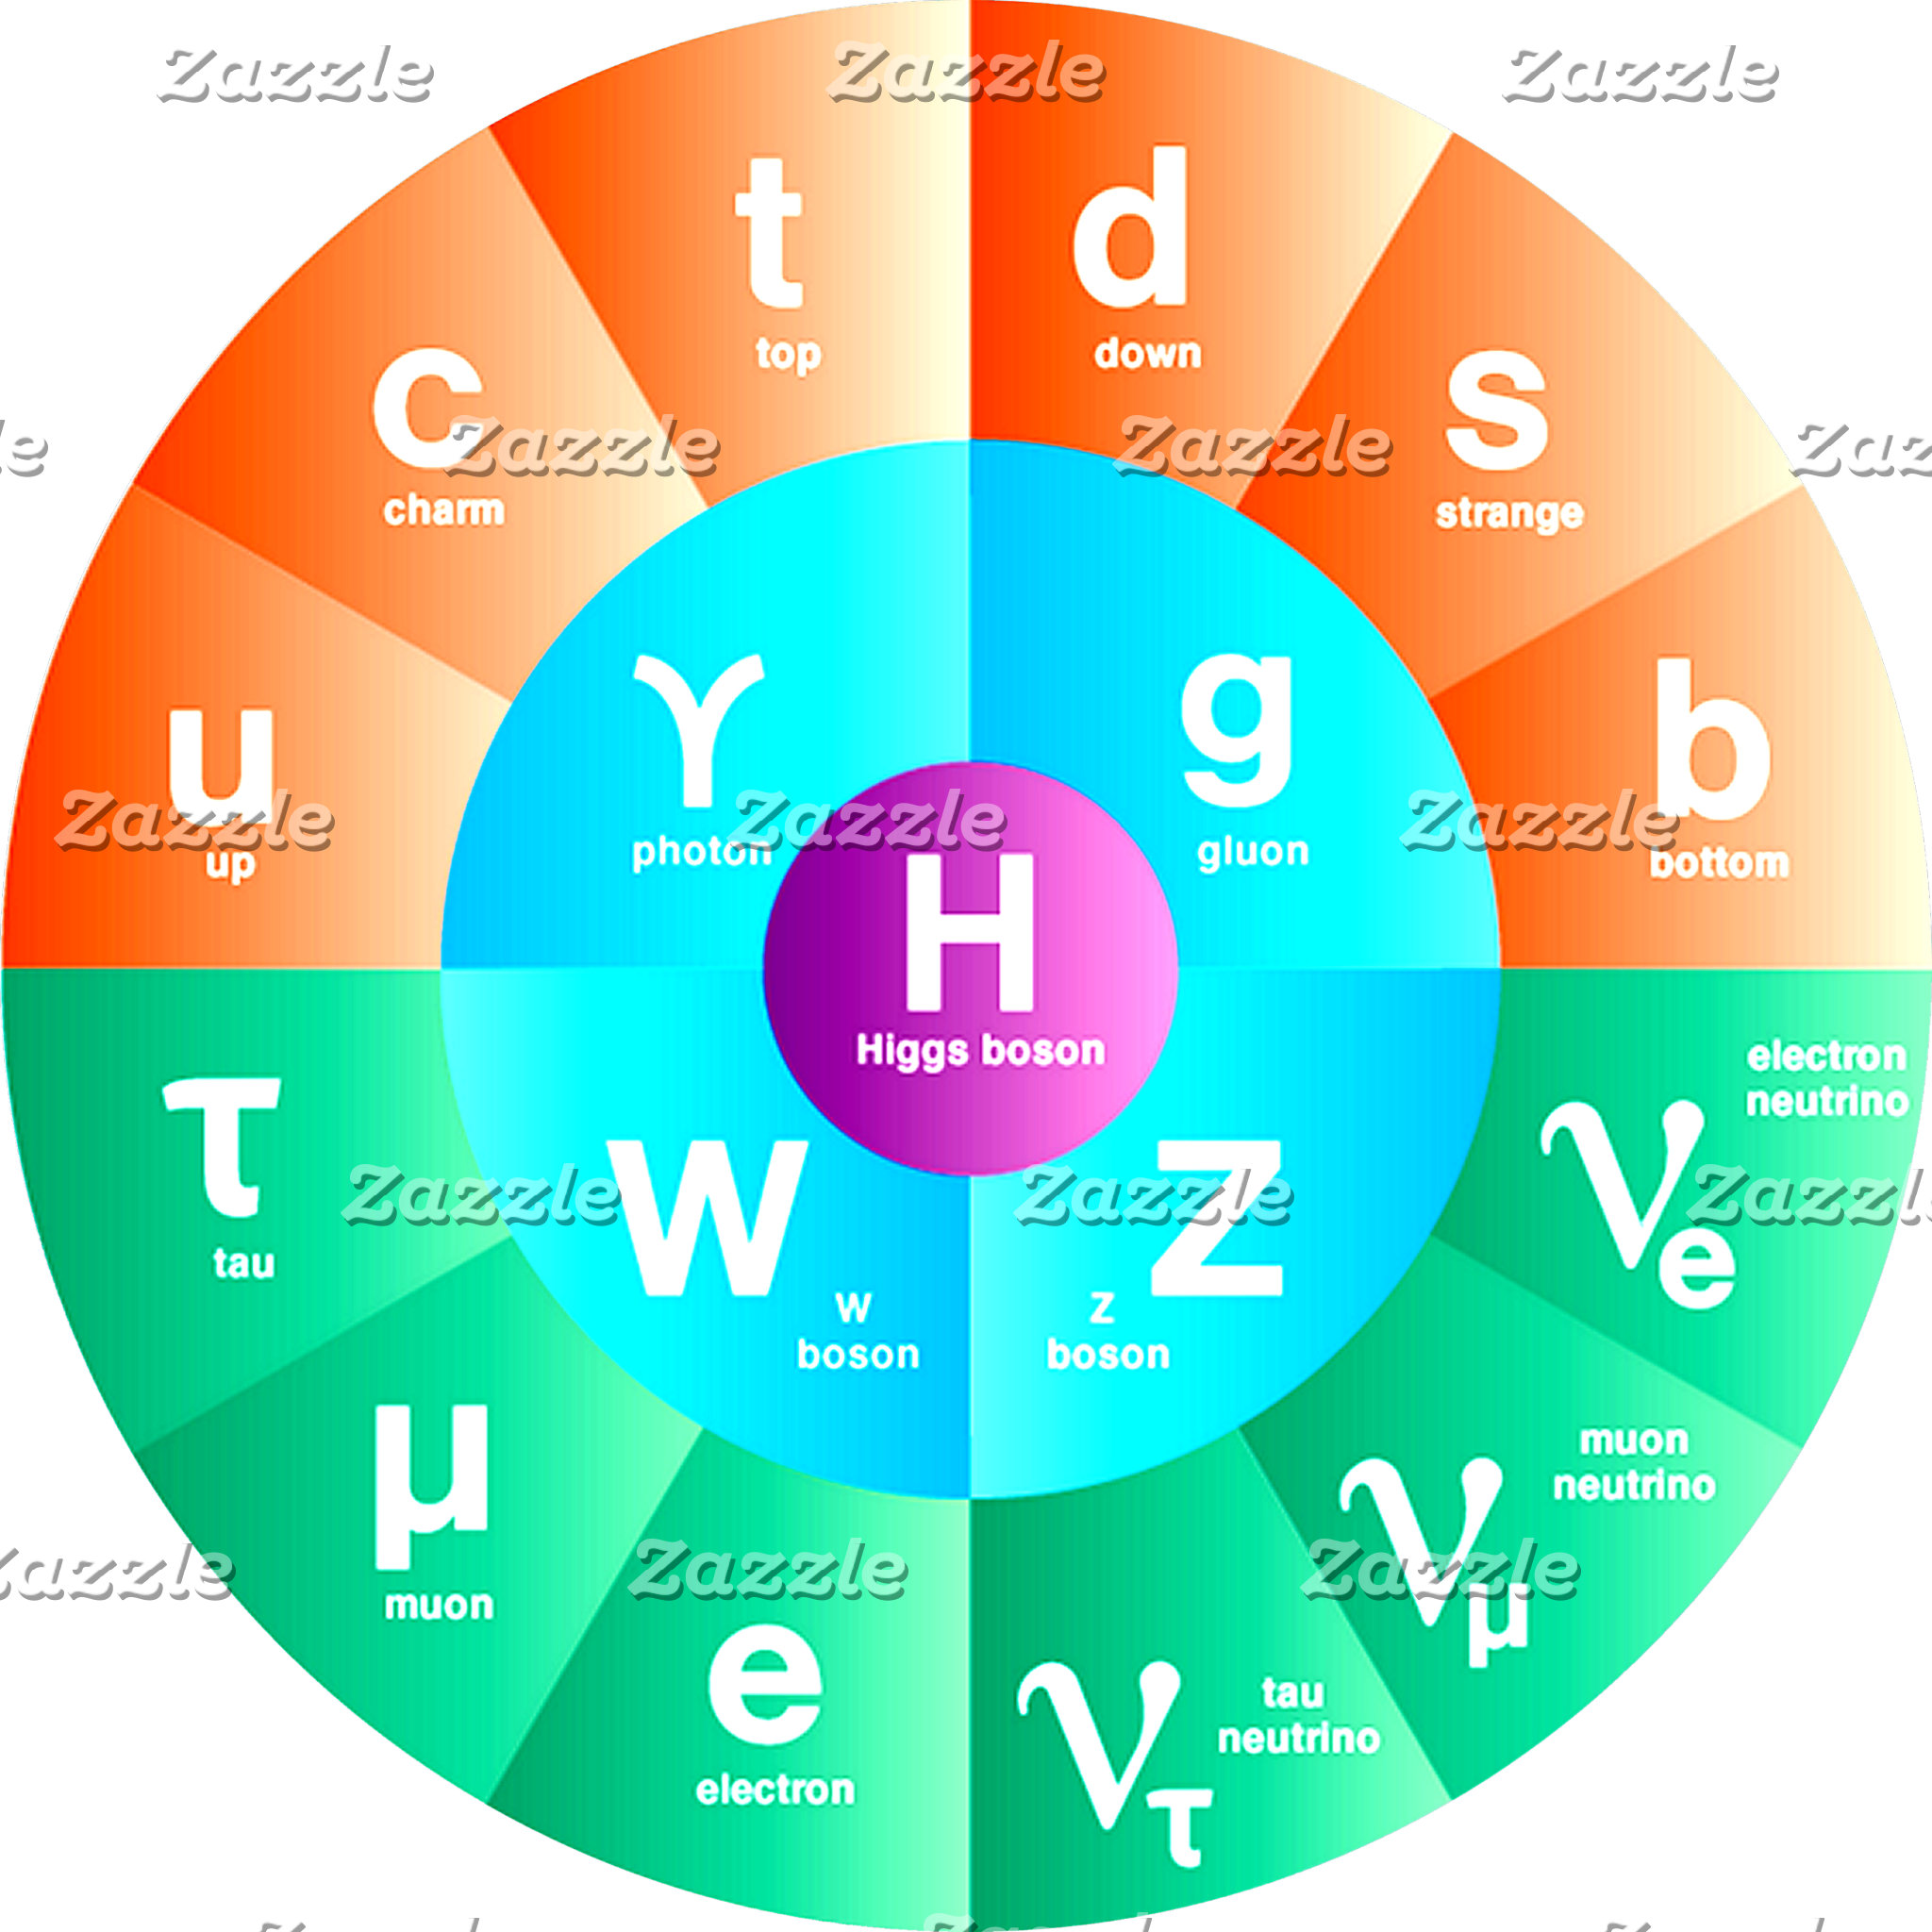 Standard Model of Particle Physics